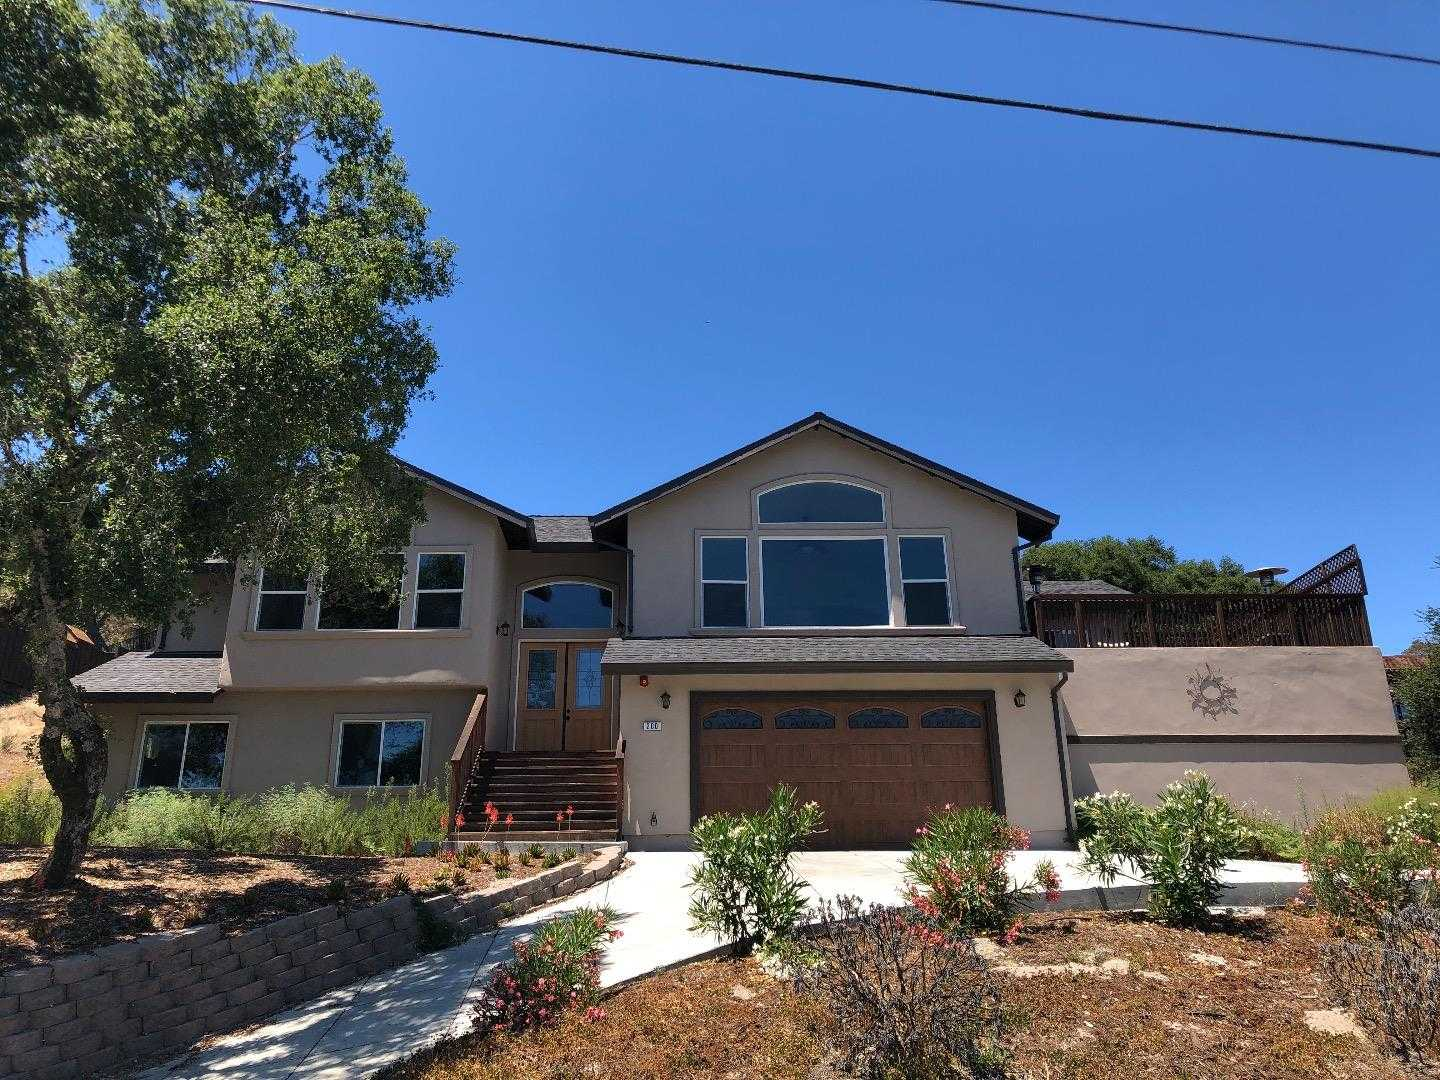 $1,295,000 - 3Br/3Ba -  for Sale in Scotts Valley